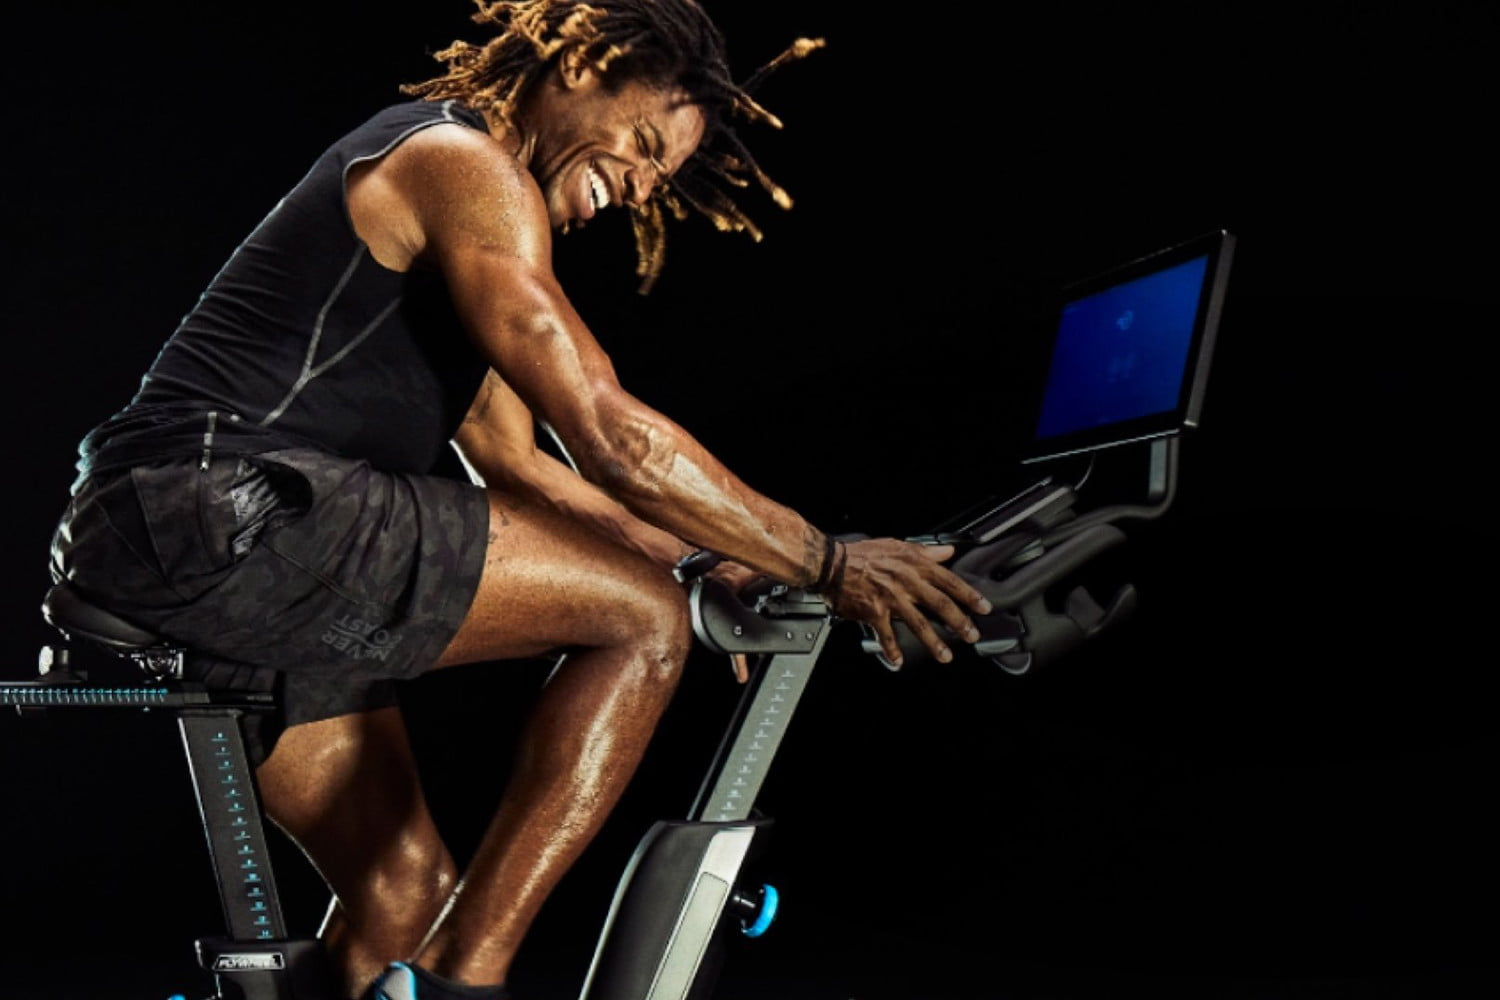 flywheel sports unveils fly anywhere spinning bike, at-home classes